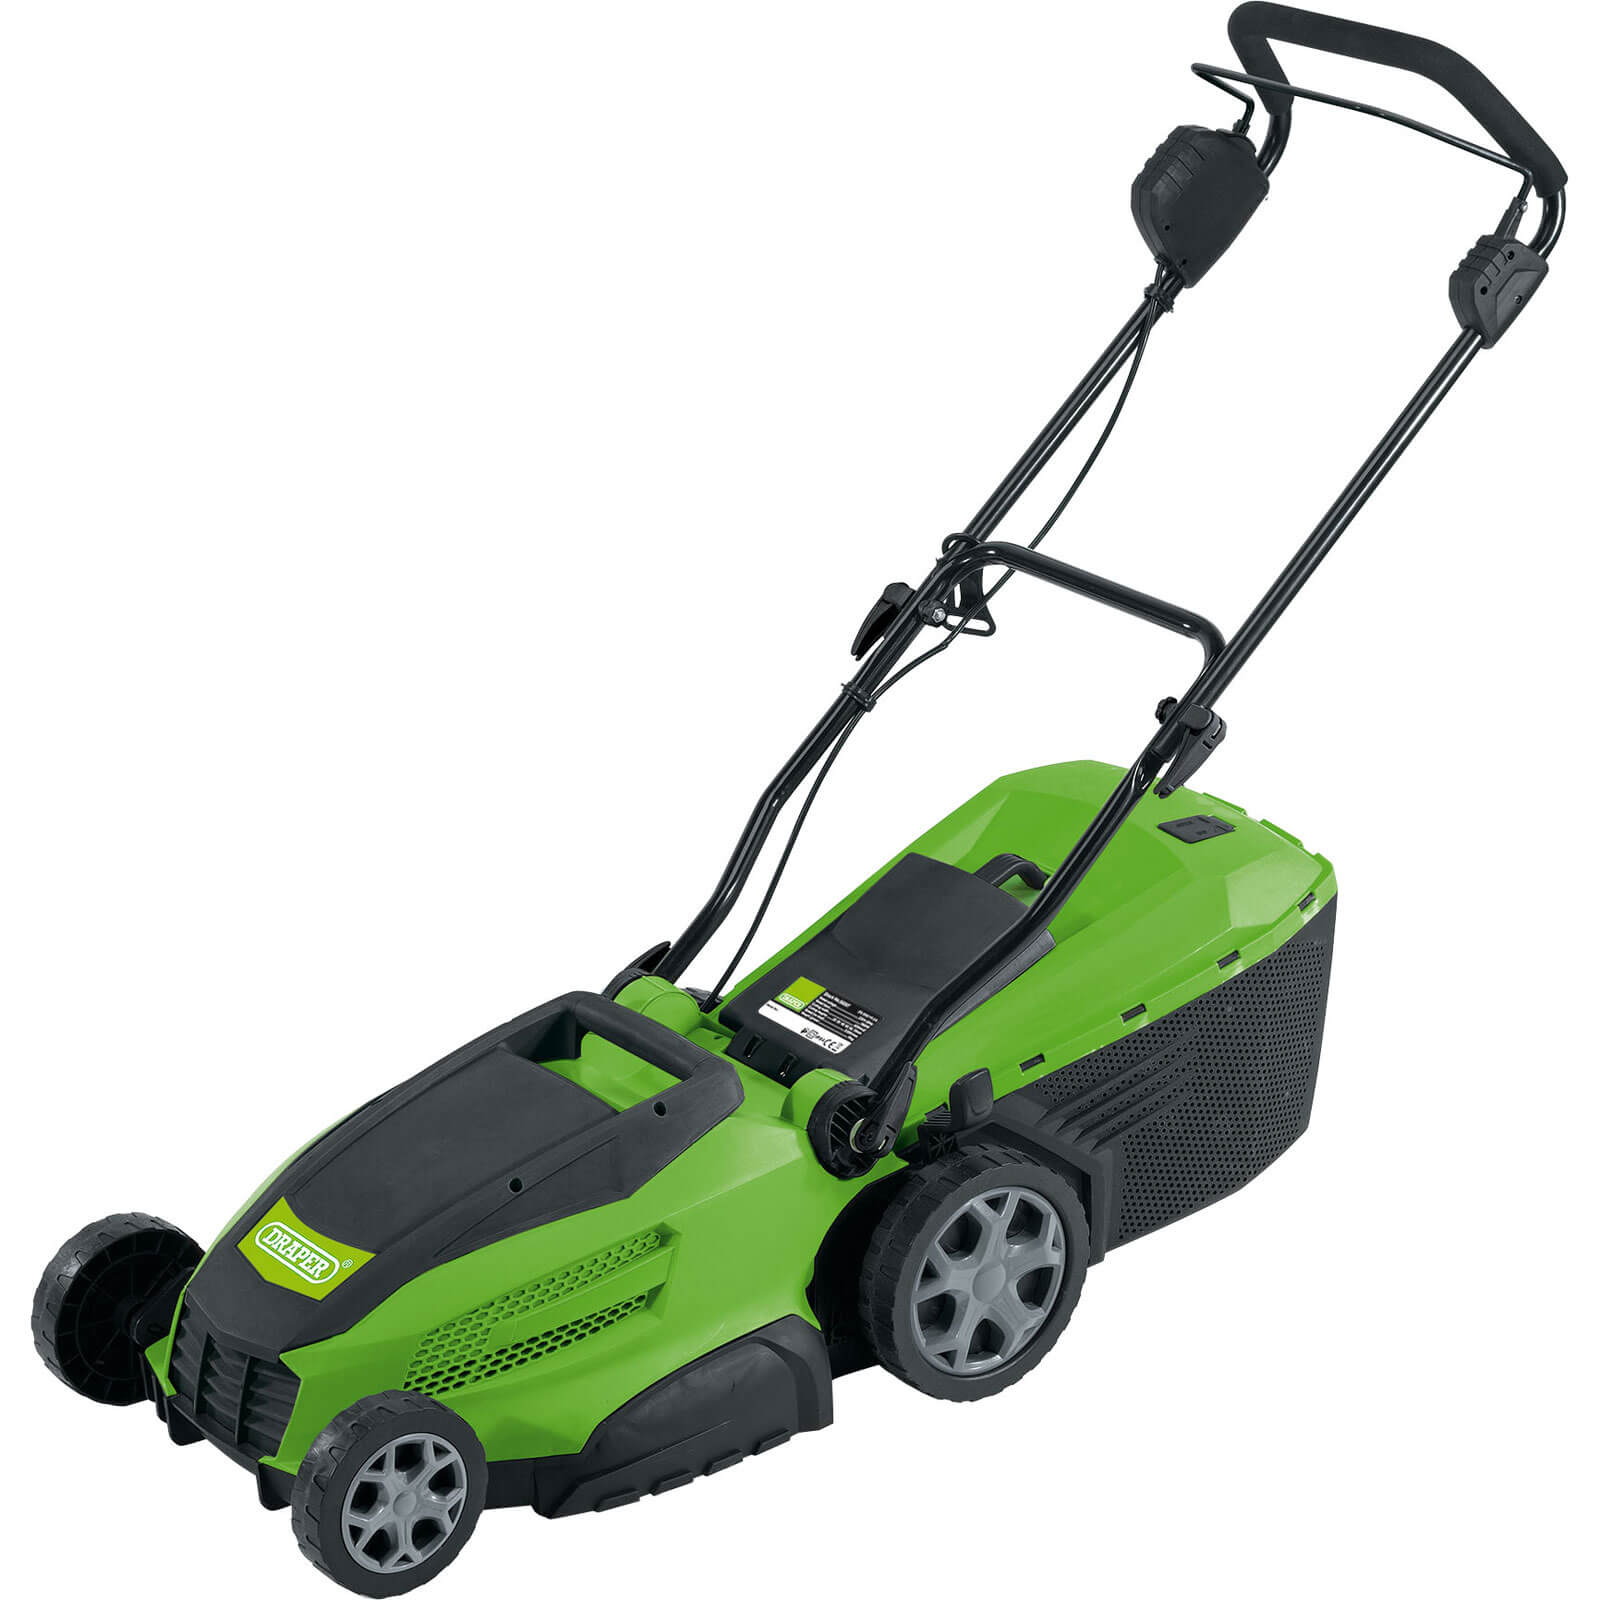 Image of Draper LM42 Rotary Lawnmower 420mm 240v